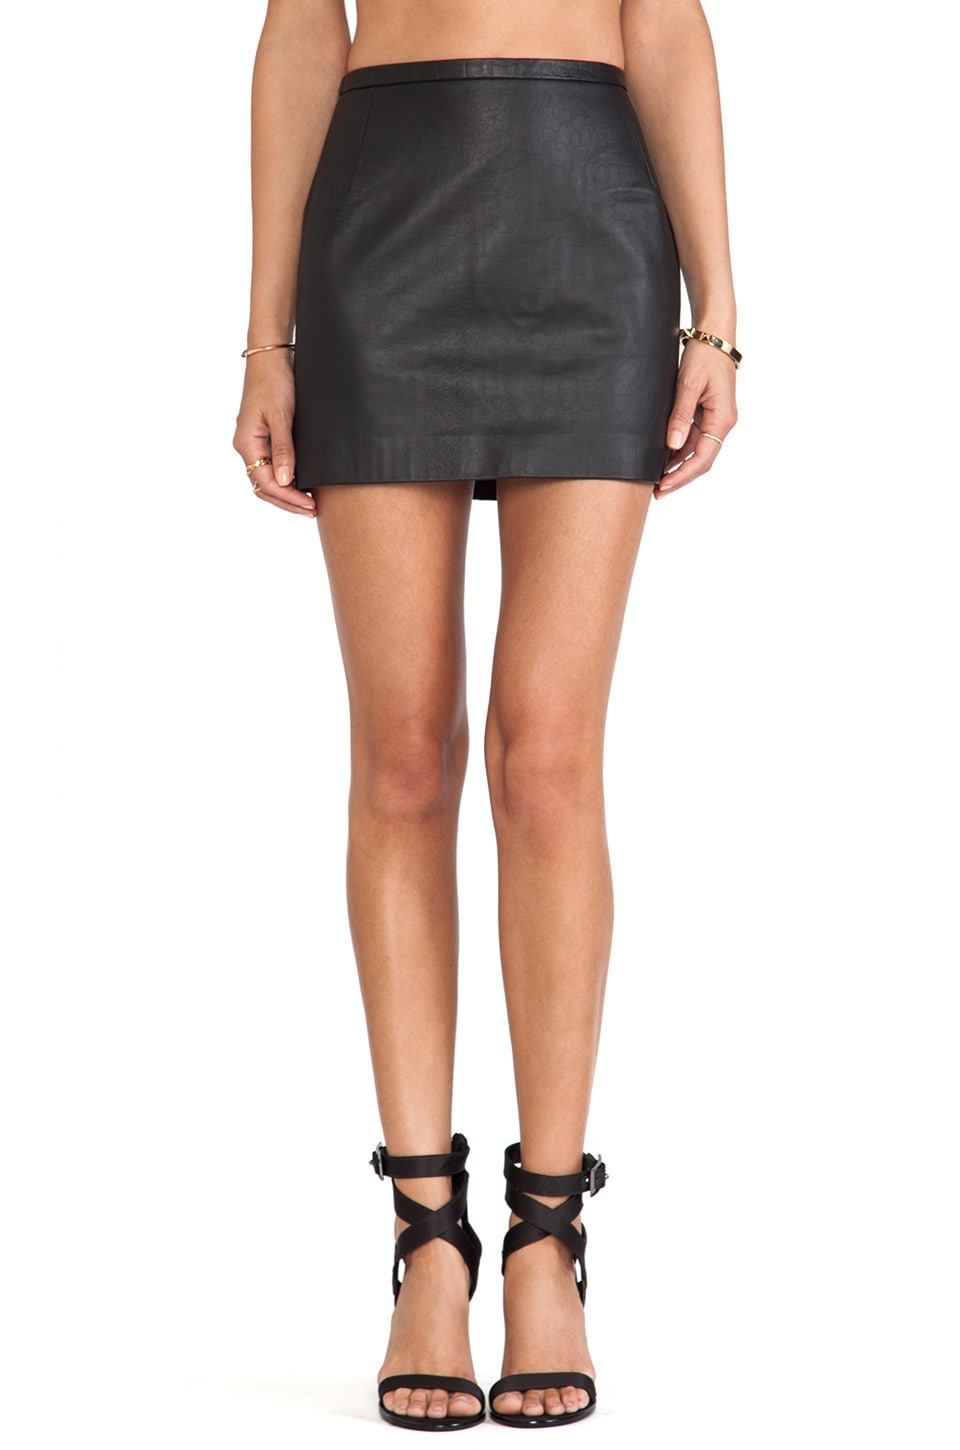 Capulet High Waist Mini Skirt in Black Croc Skin